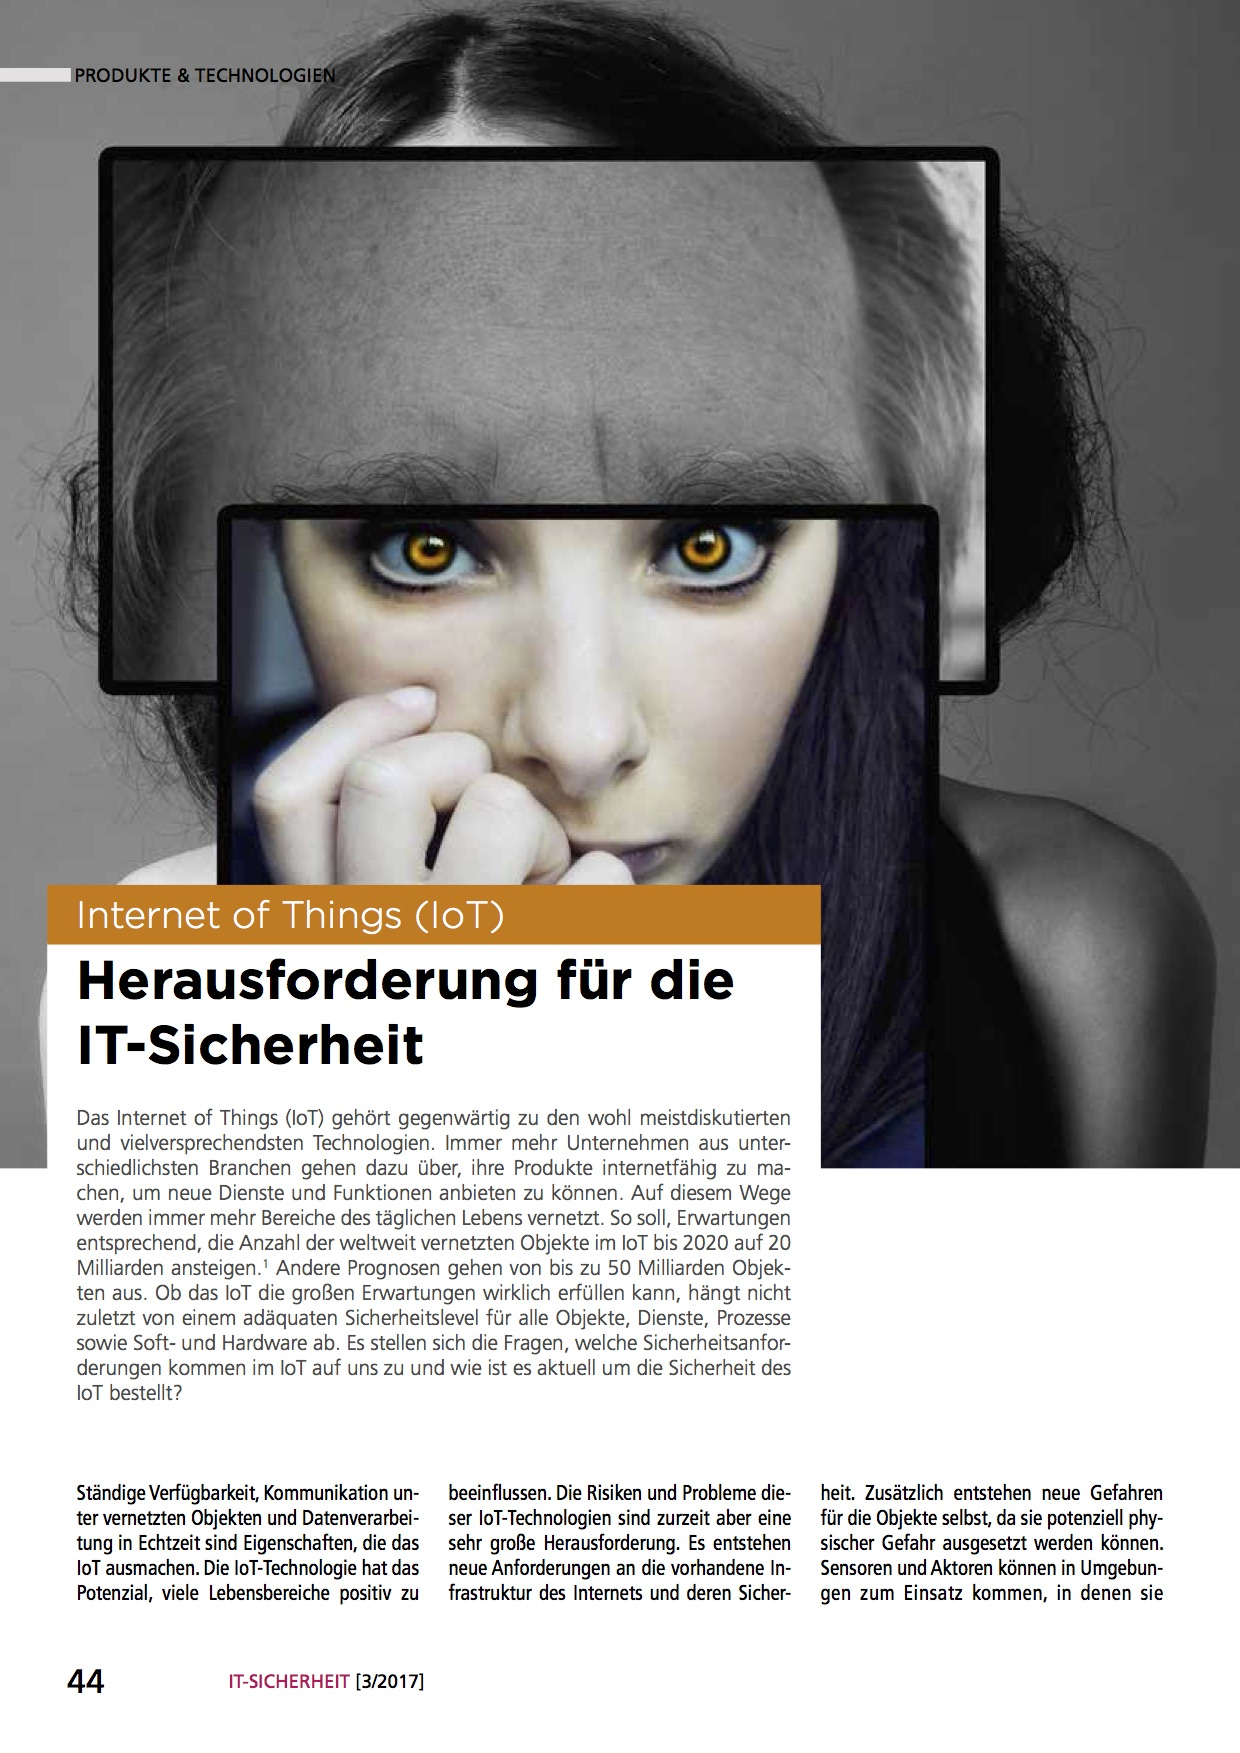 359-Internet-of-Things-IoT-Herausforderung-für-die-IT-Sicherheit-Prof.-Norbert-Pohlmann